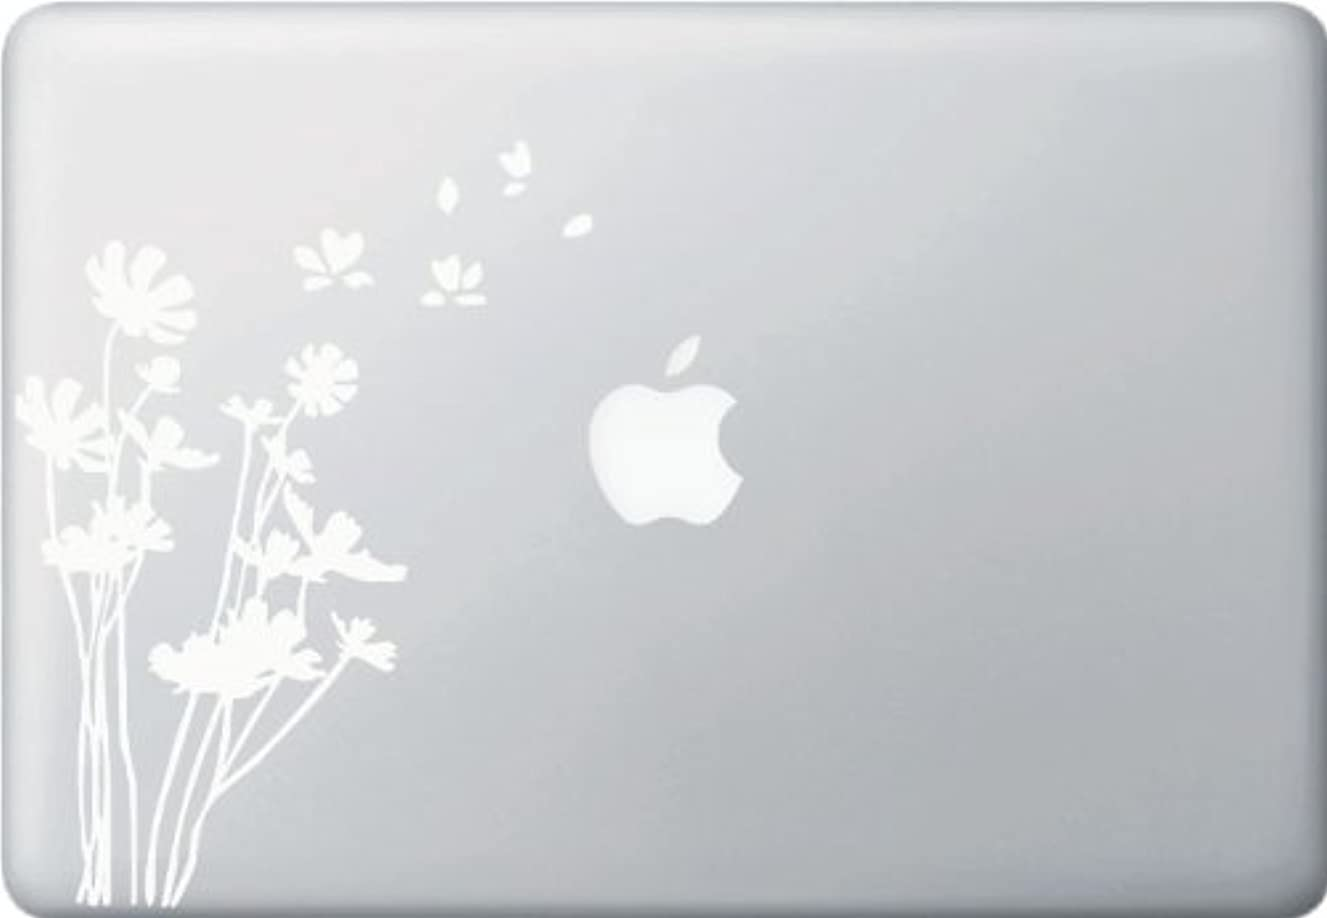 Yadda-Yadda Design Co. Flowers in the Wind - Macbook or Laptop Vinyl Decal Sticker (White)